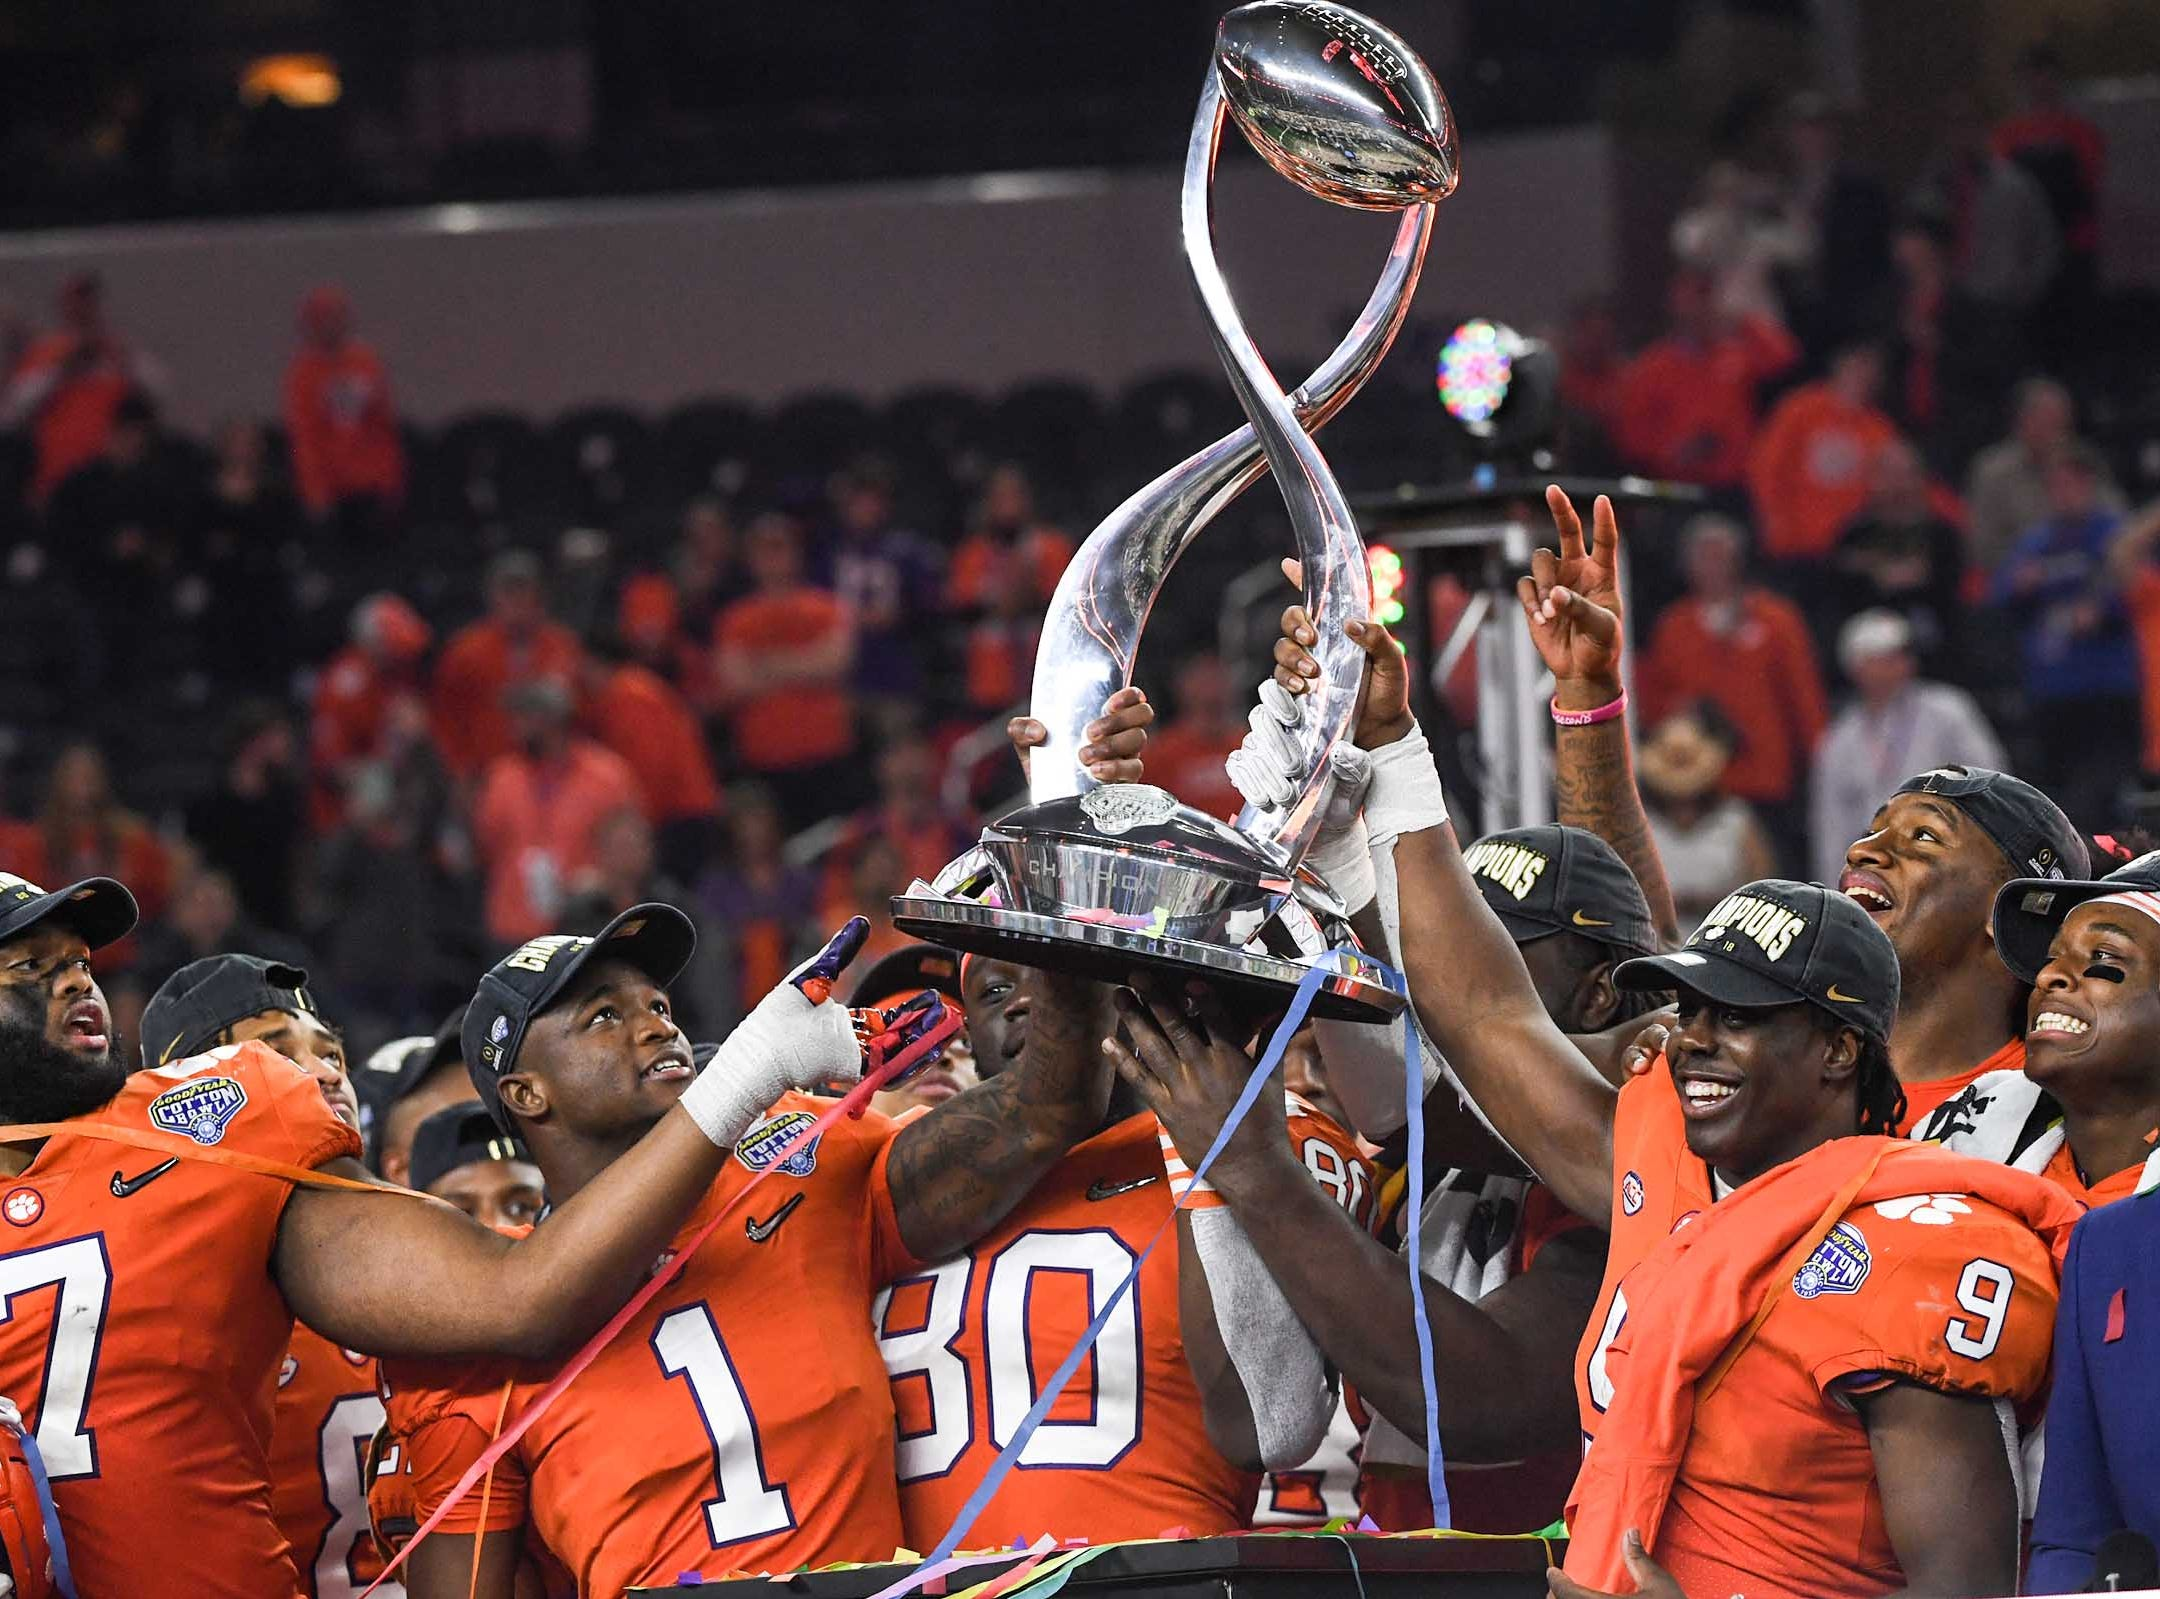 Clemson defensive lineman Austin Bryant (7), left, cornerback Trayvon Mullen (1), tight end Milan Richard (80), running back Travis Etienne (9) and defensive lineman Clelin Ferrell (99) hold up the trophy after their 30-3 win over Notre Dame in the College Football Playoff Semifinal at the Goodyear Cotton Bowl Classic at AT&T Stadium in Arlington, Texas Saturday, December 29, 2018.